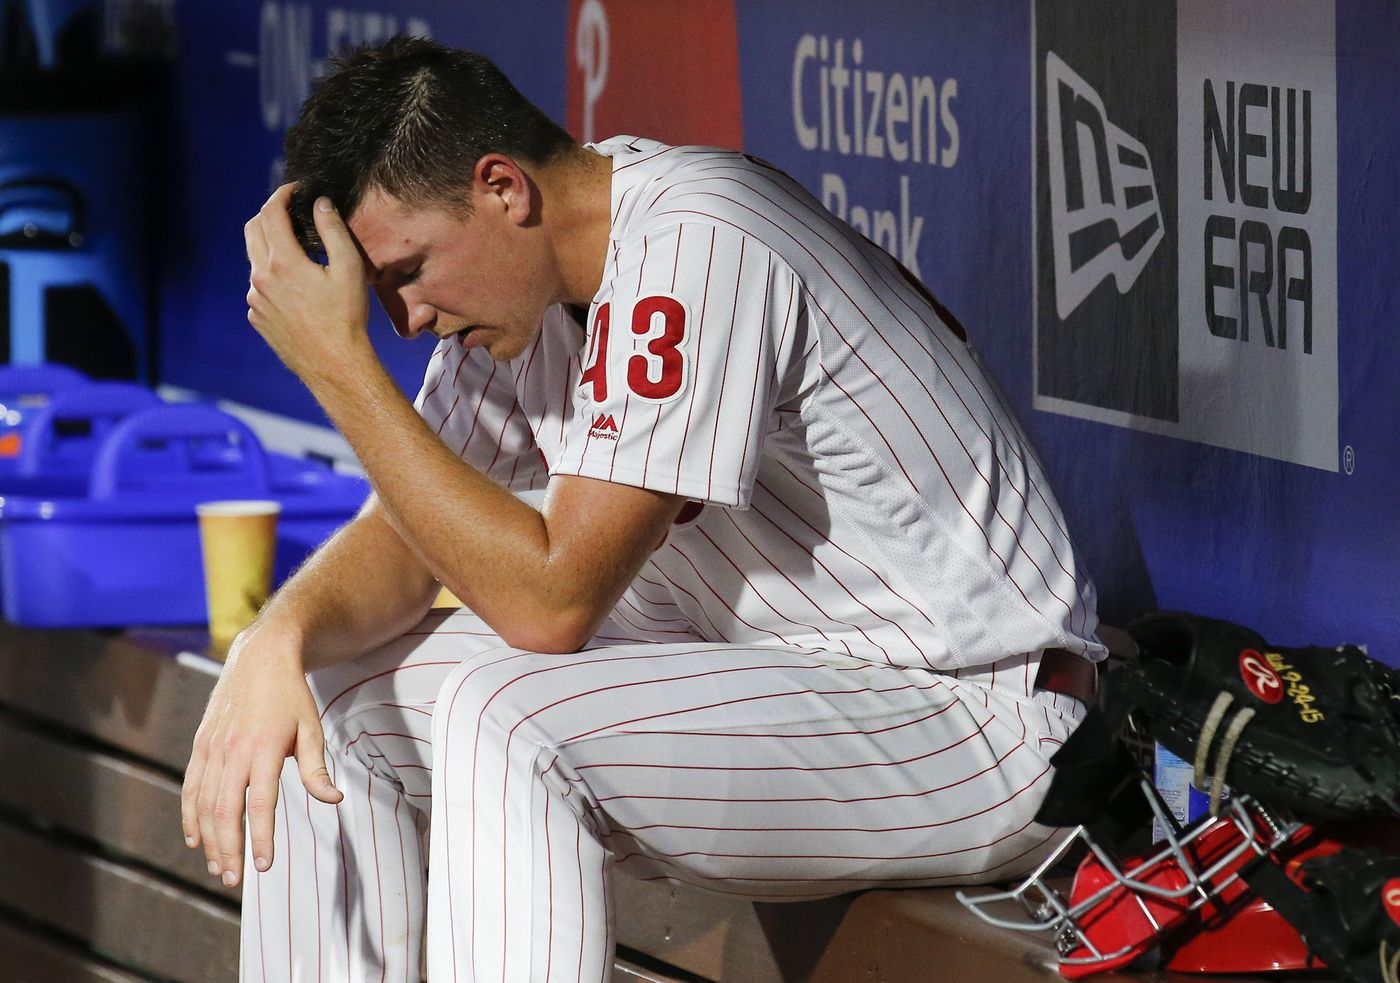 If Phillies front office doesn't believe, you shouldn't either | Bob Ford